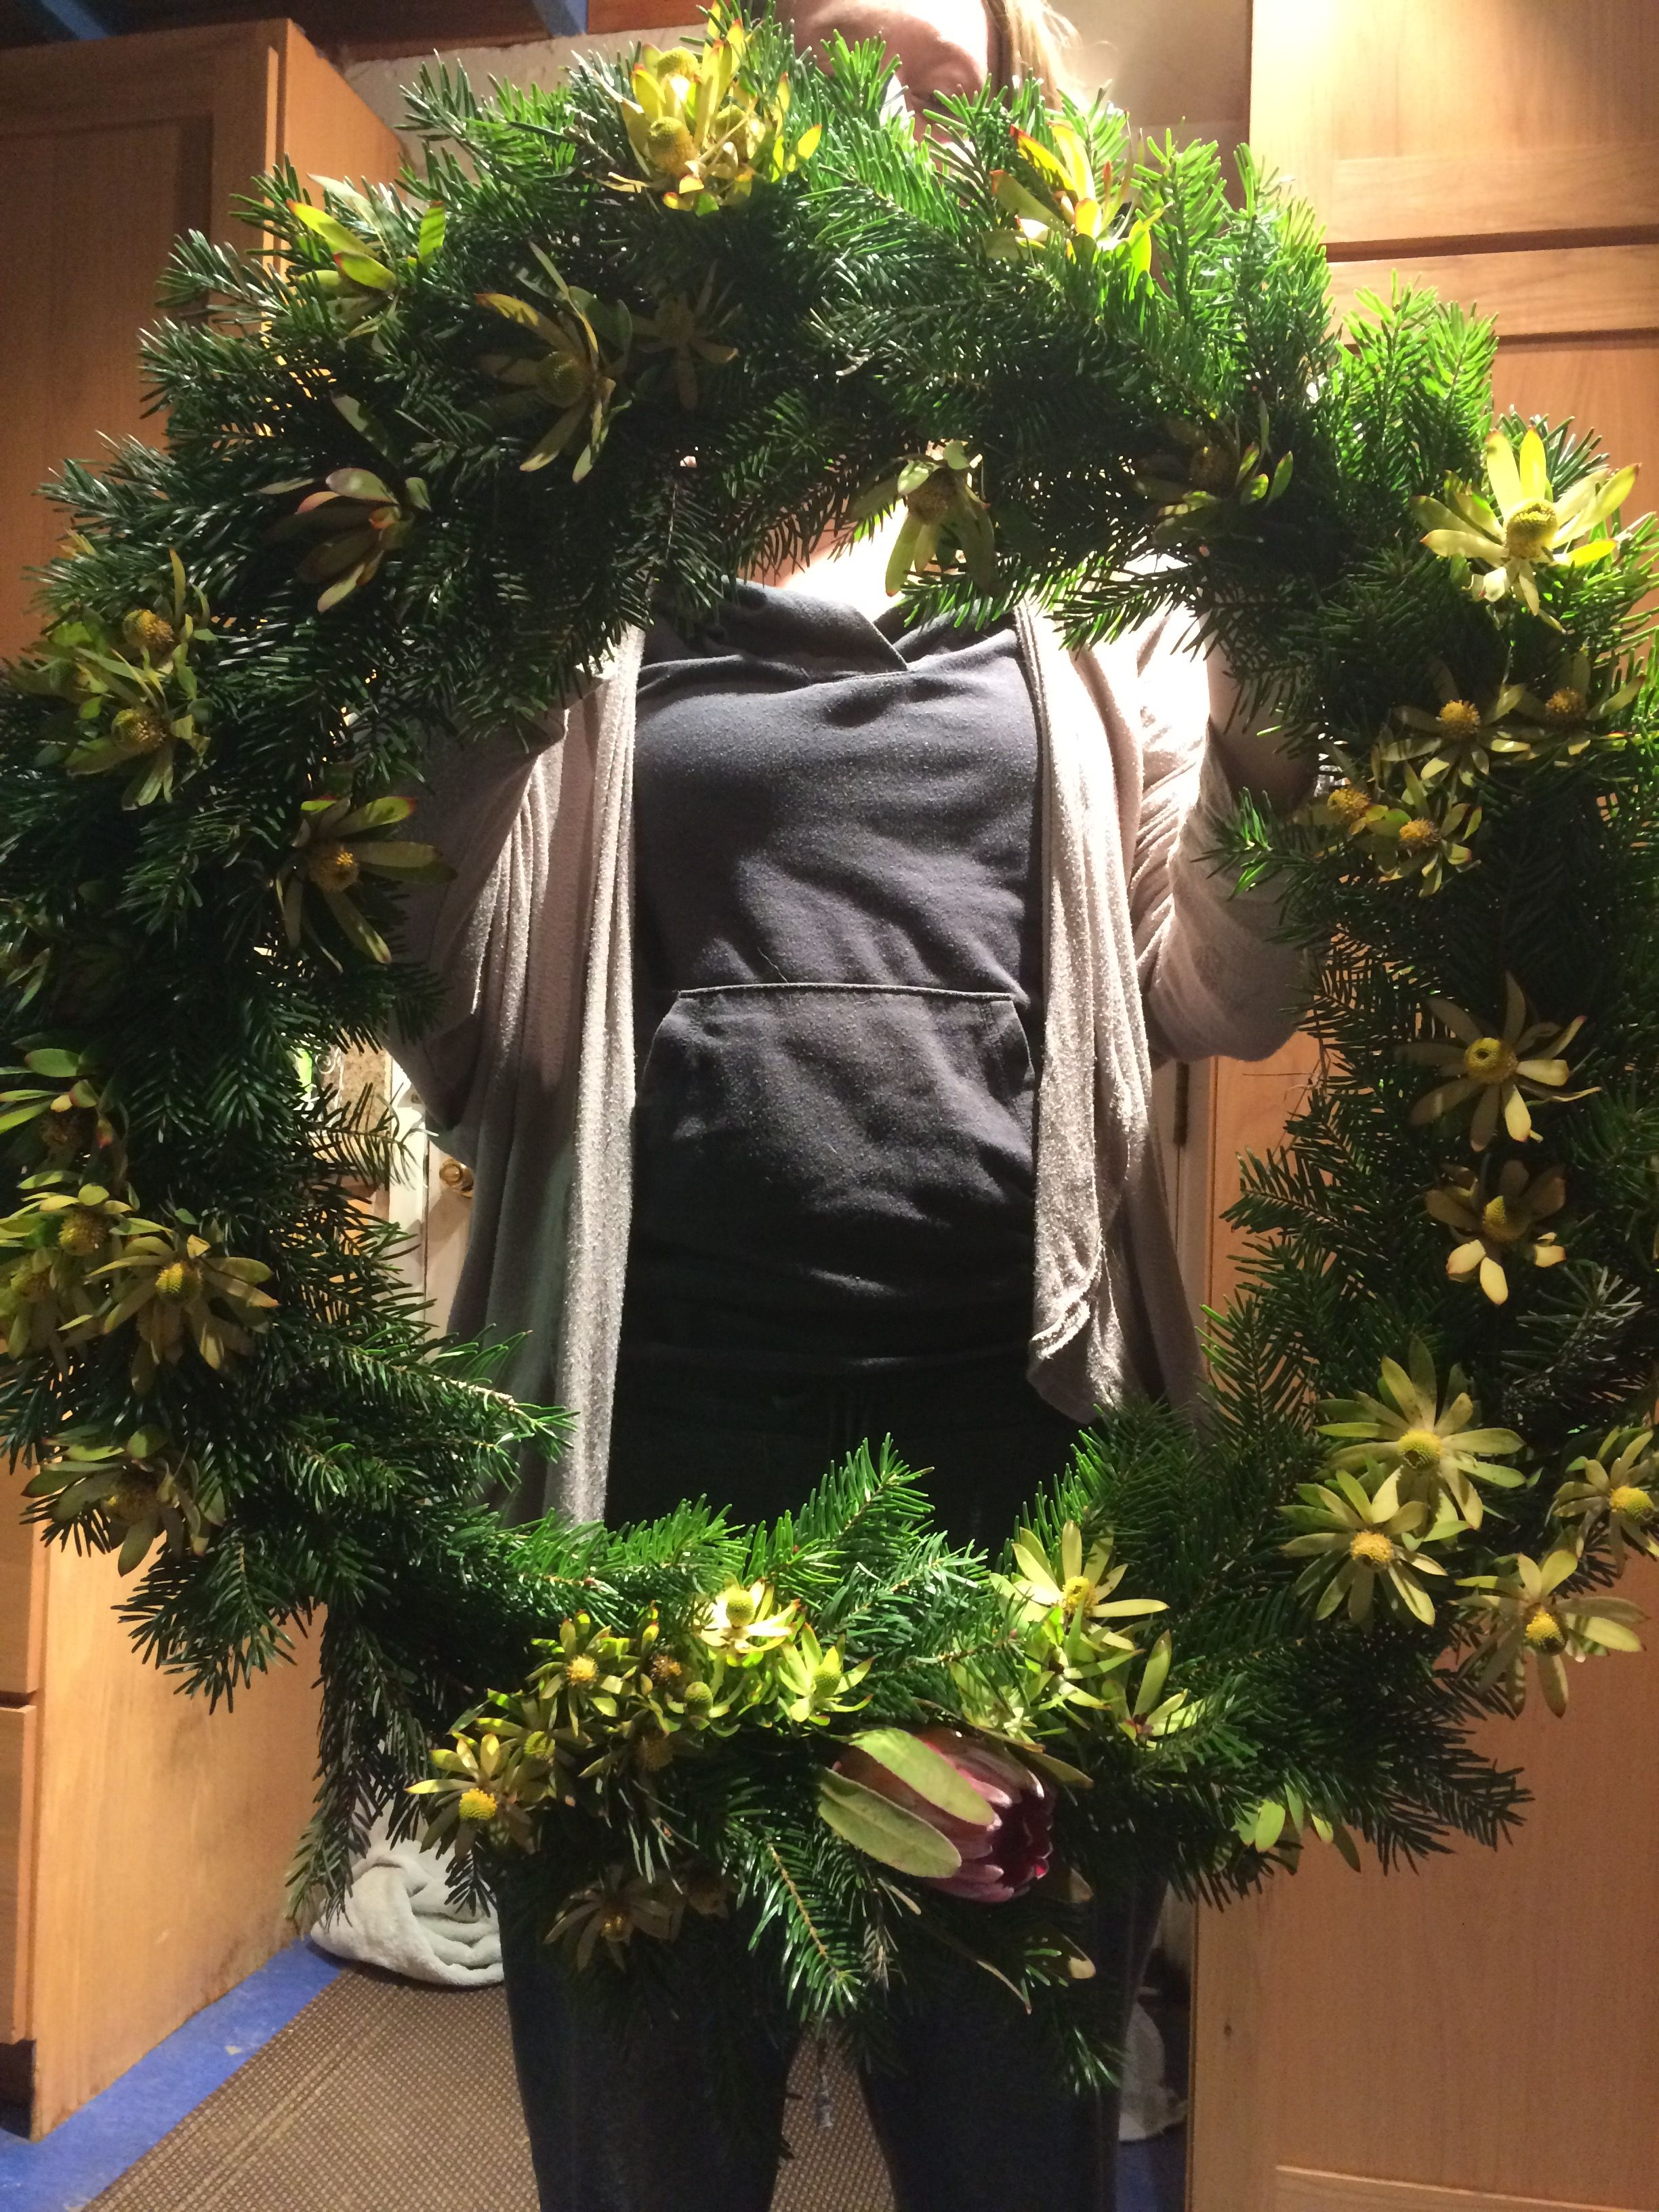 Christmas wreath made from the tree and garden 🎄